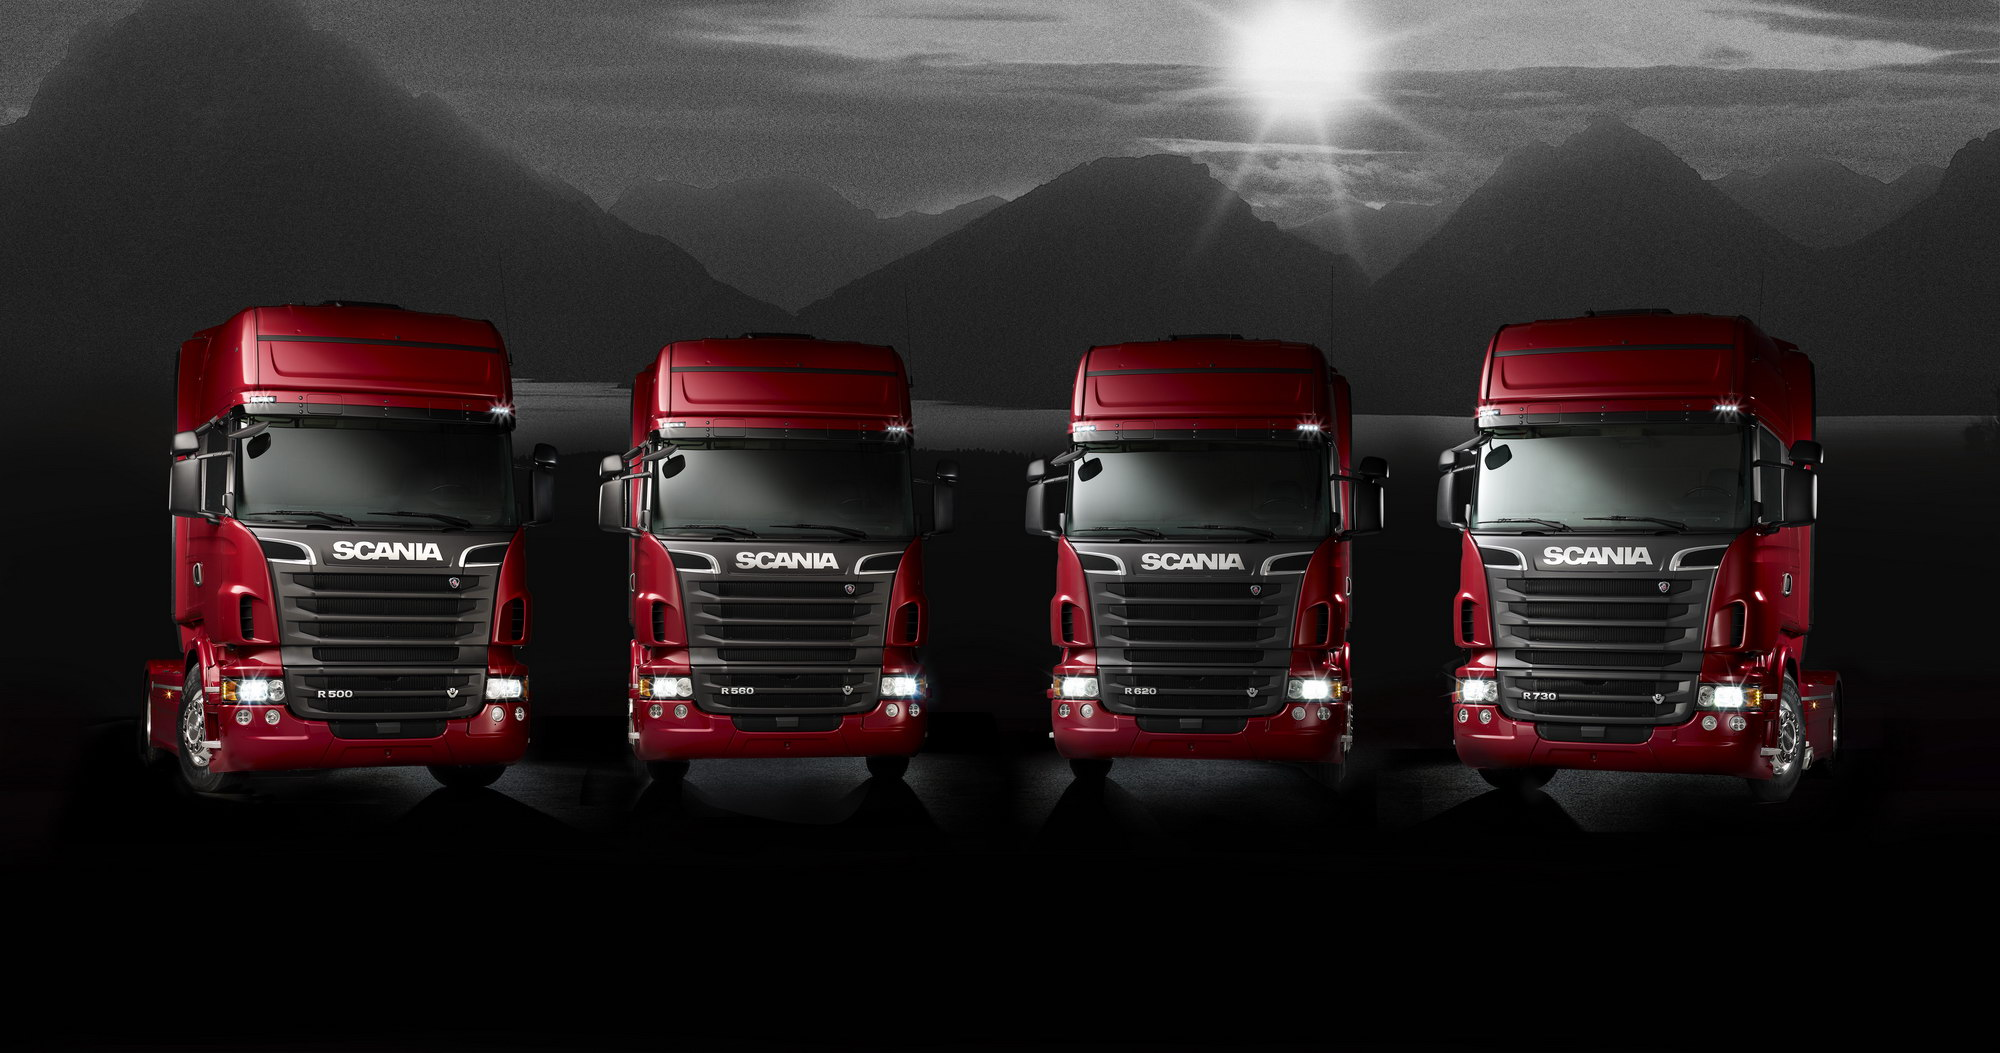 Mahindra And Mahindra Cars Wallpapers Scania V8 Truck Range Pictures Photos Wallpapers Top